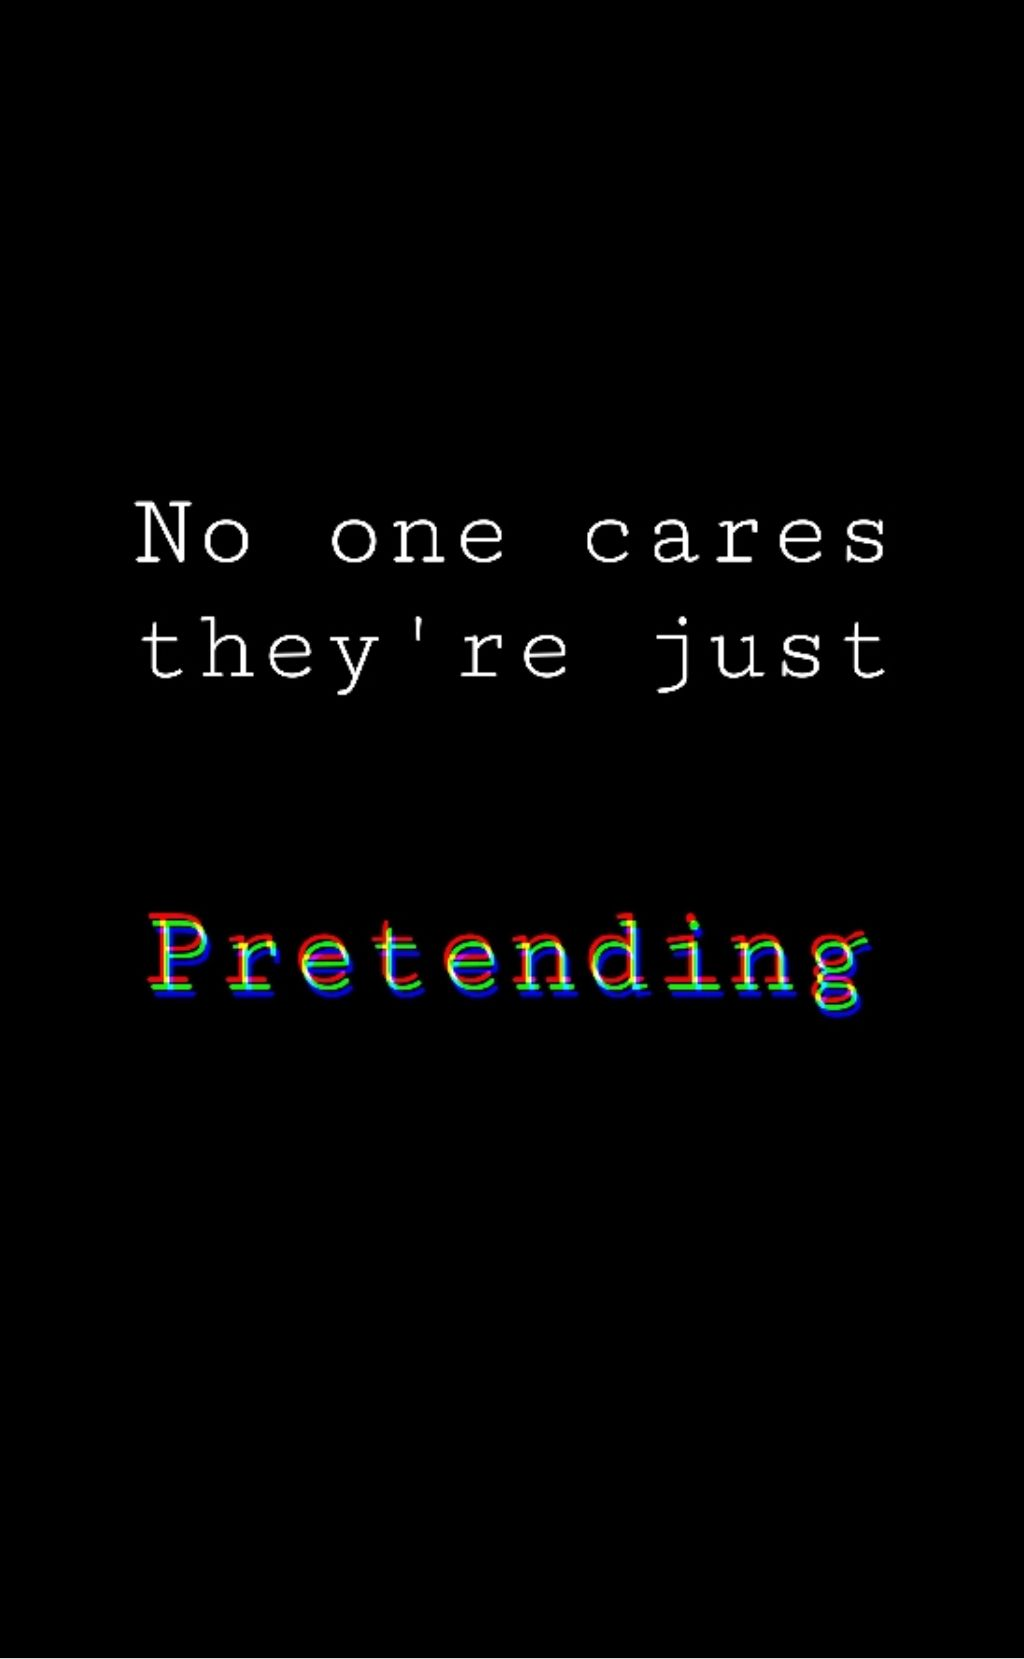 No one cares.. theyre just pretending 😔